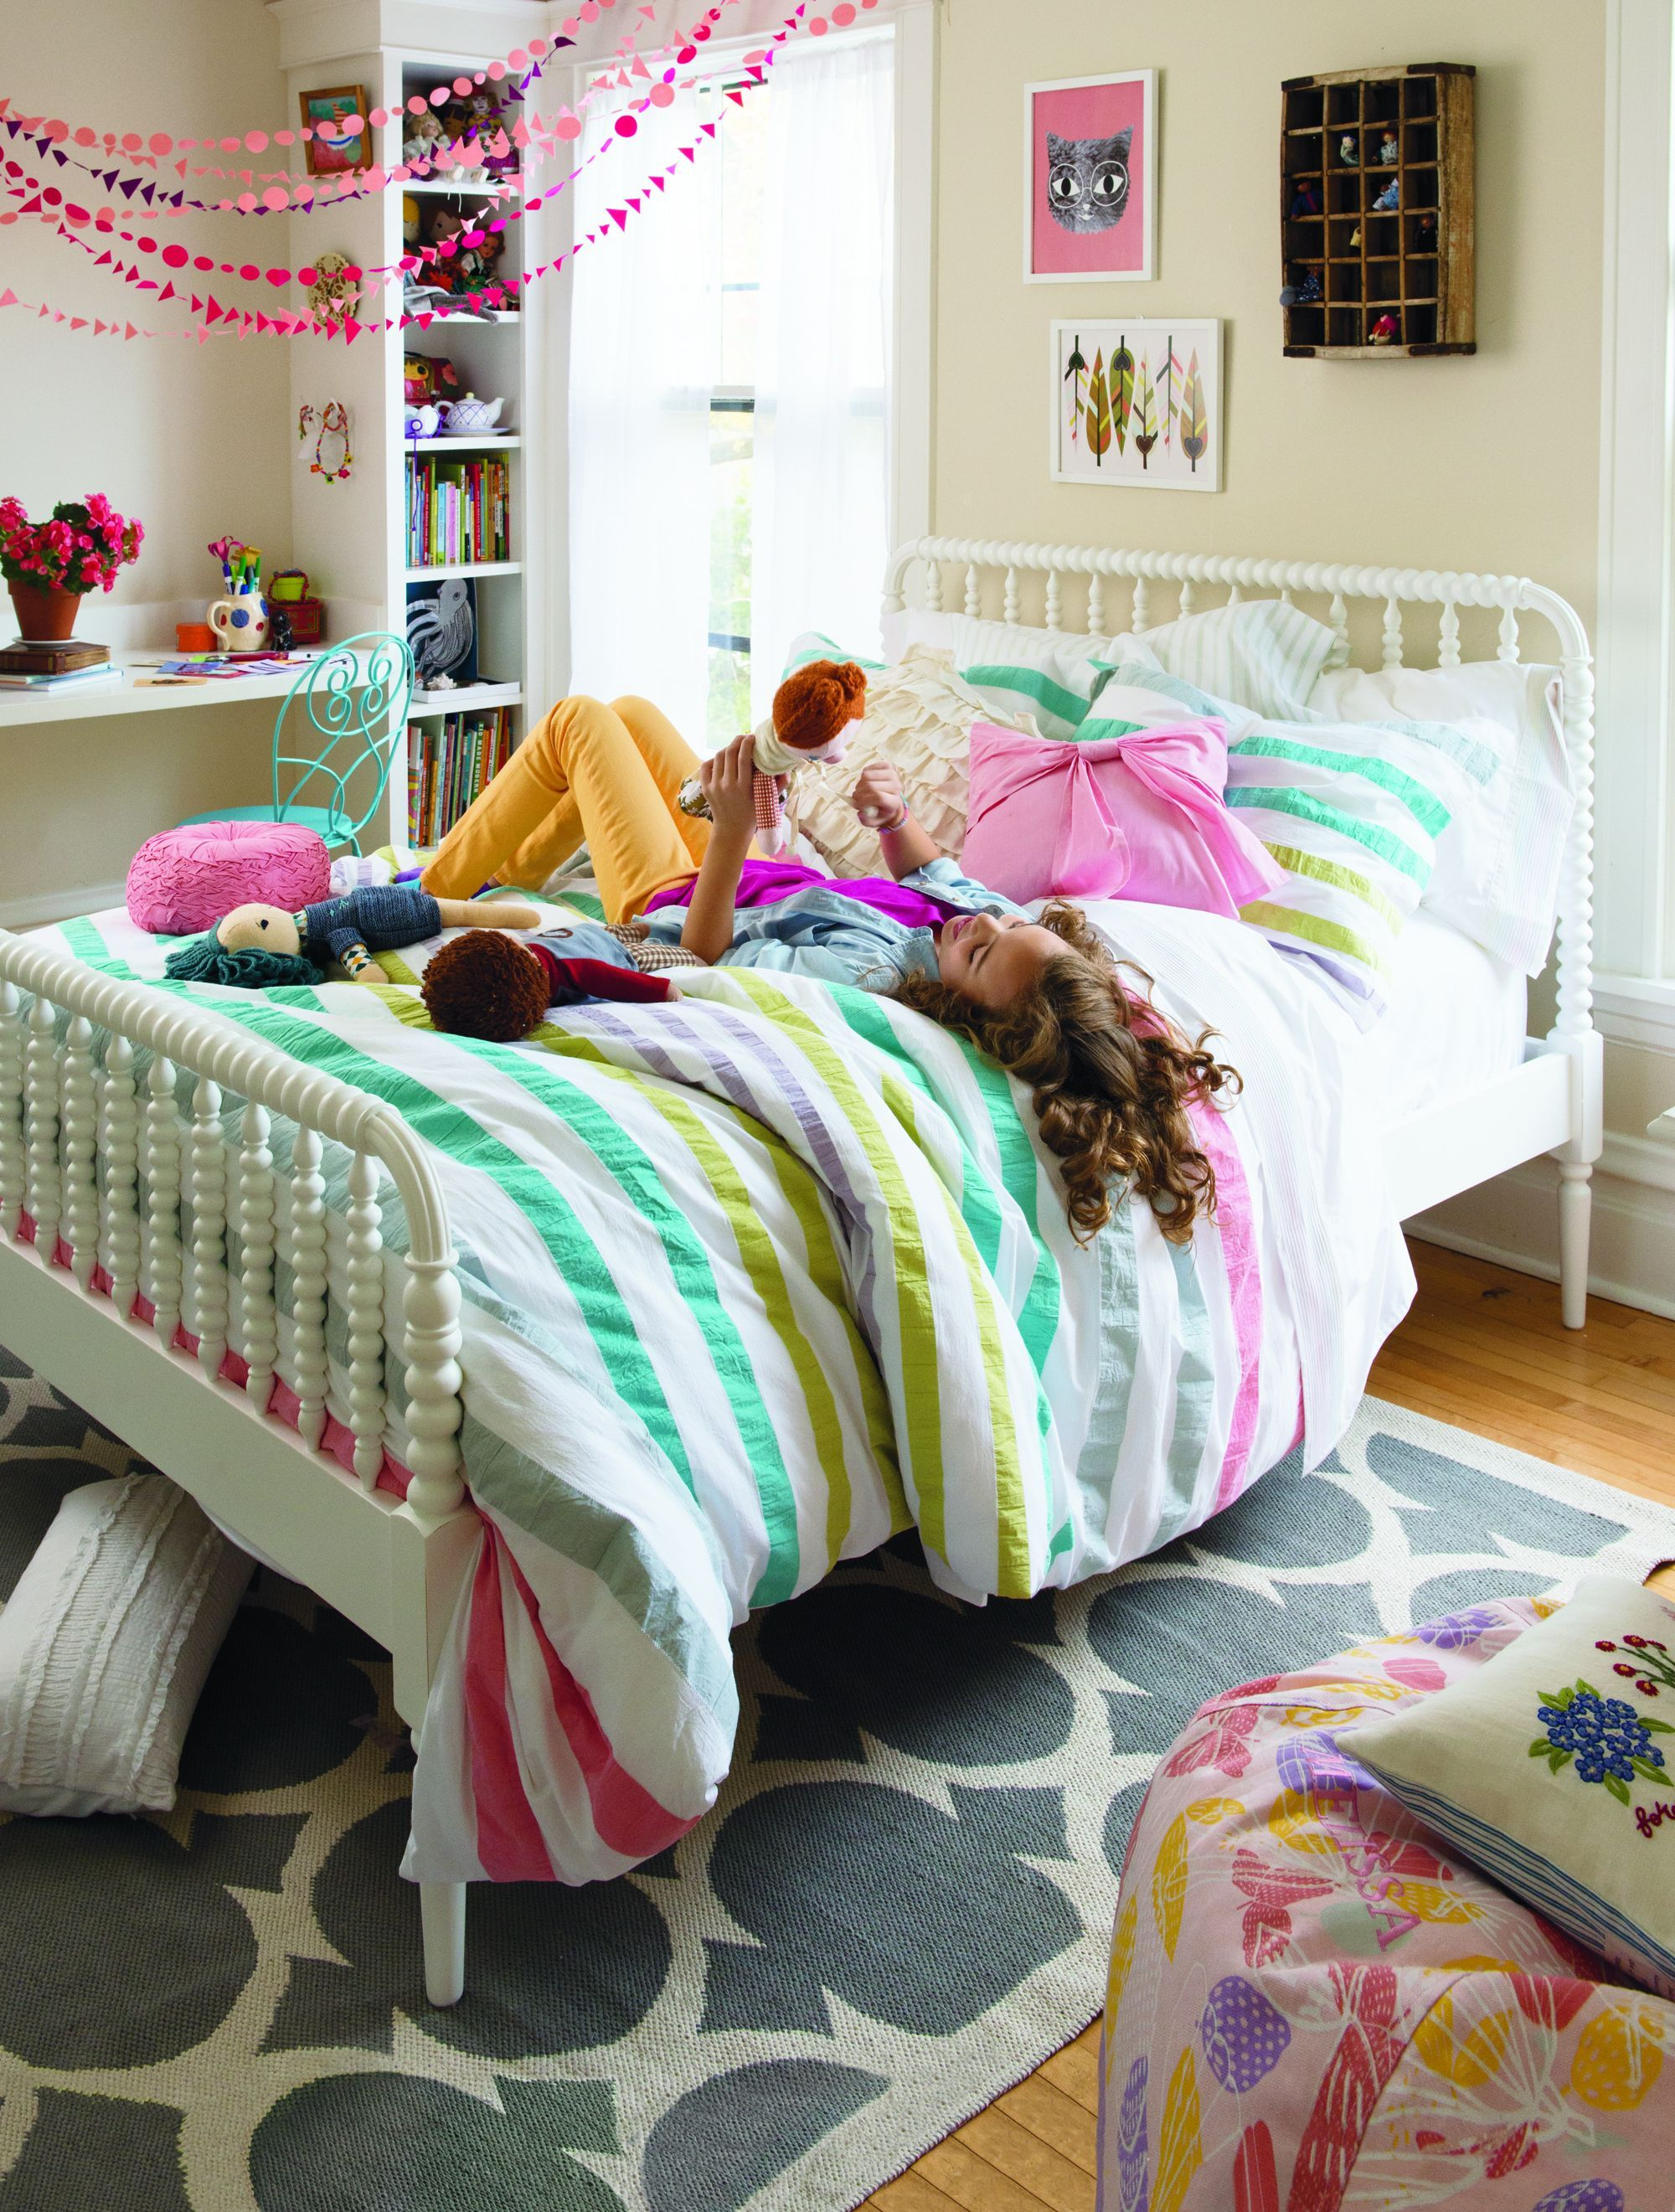 Pin By Barry Cee On Diy Bed Girls Bedroom Jenny Lind